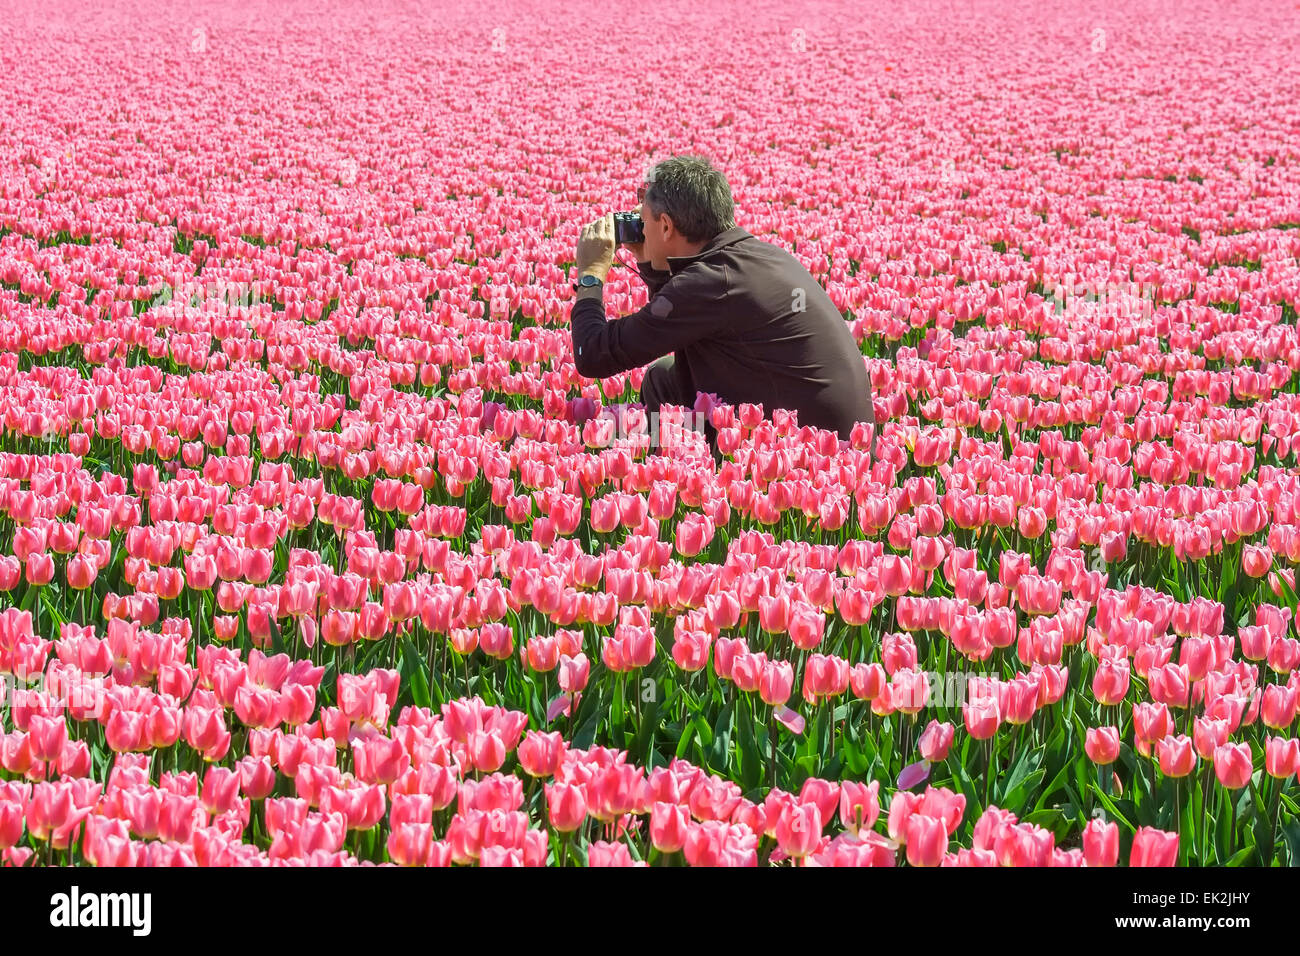 L'homme de prendre une photo dans un champ de tulipes Photo Stock